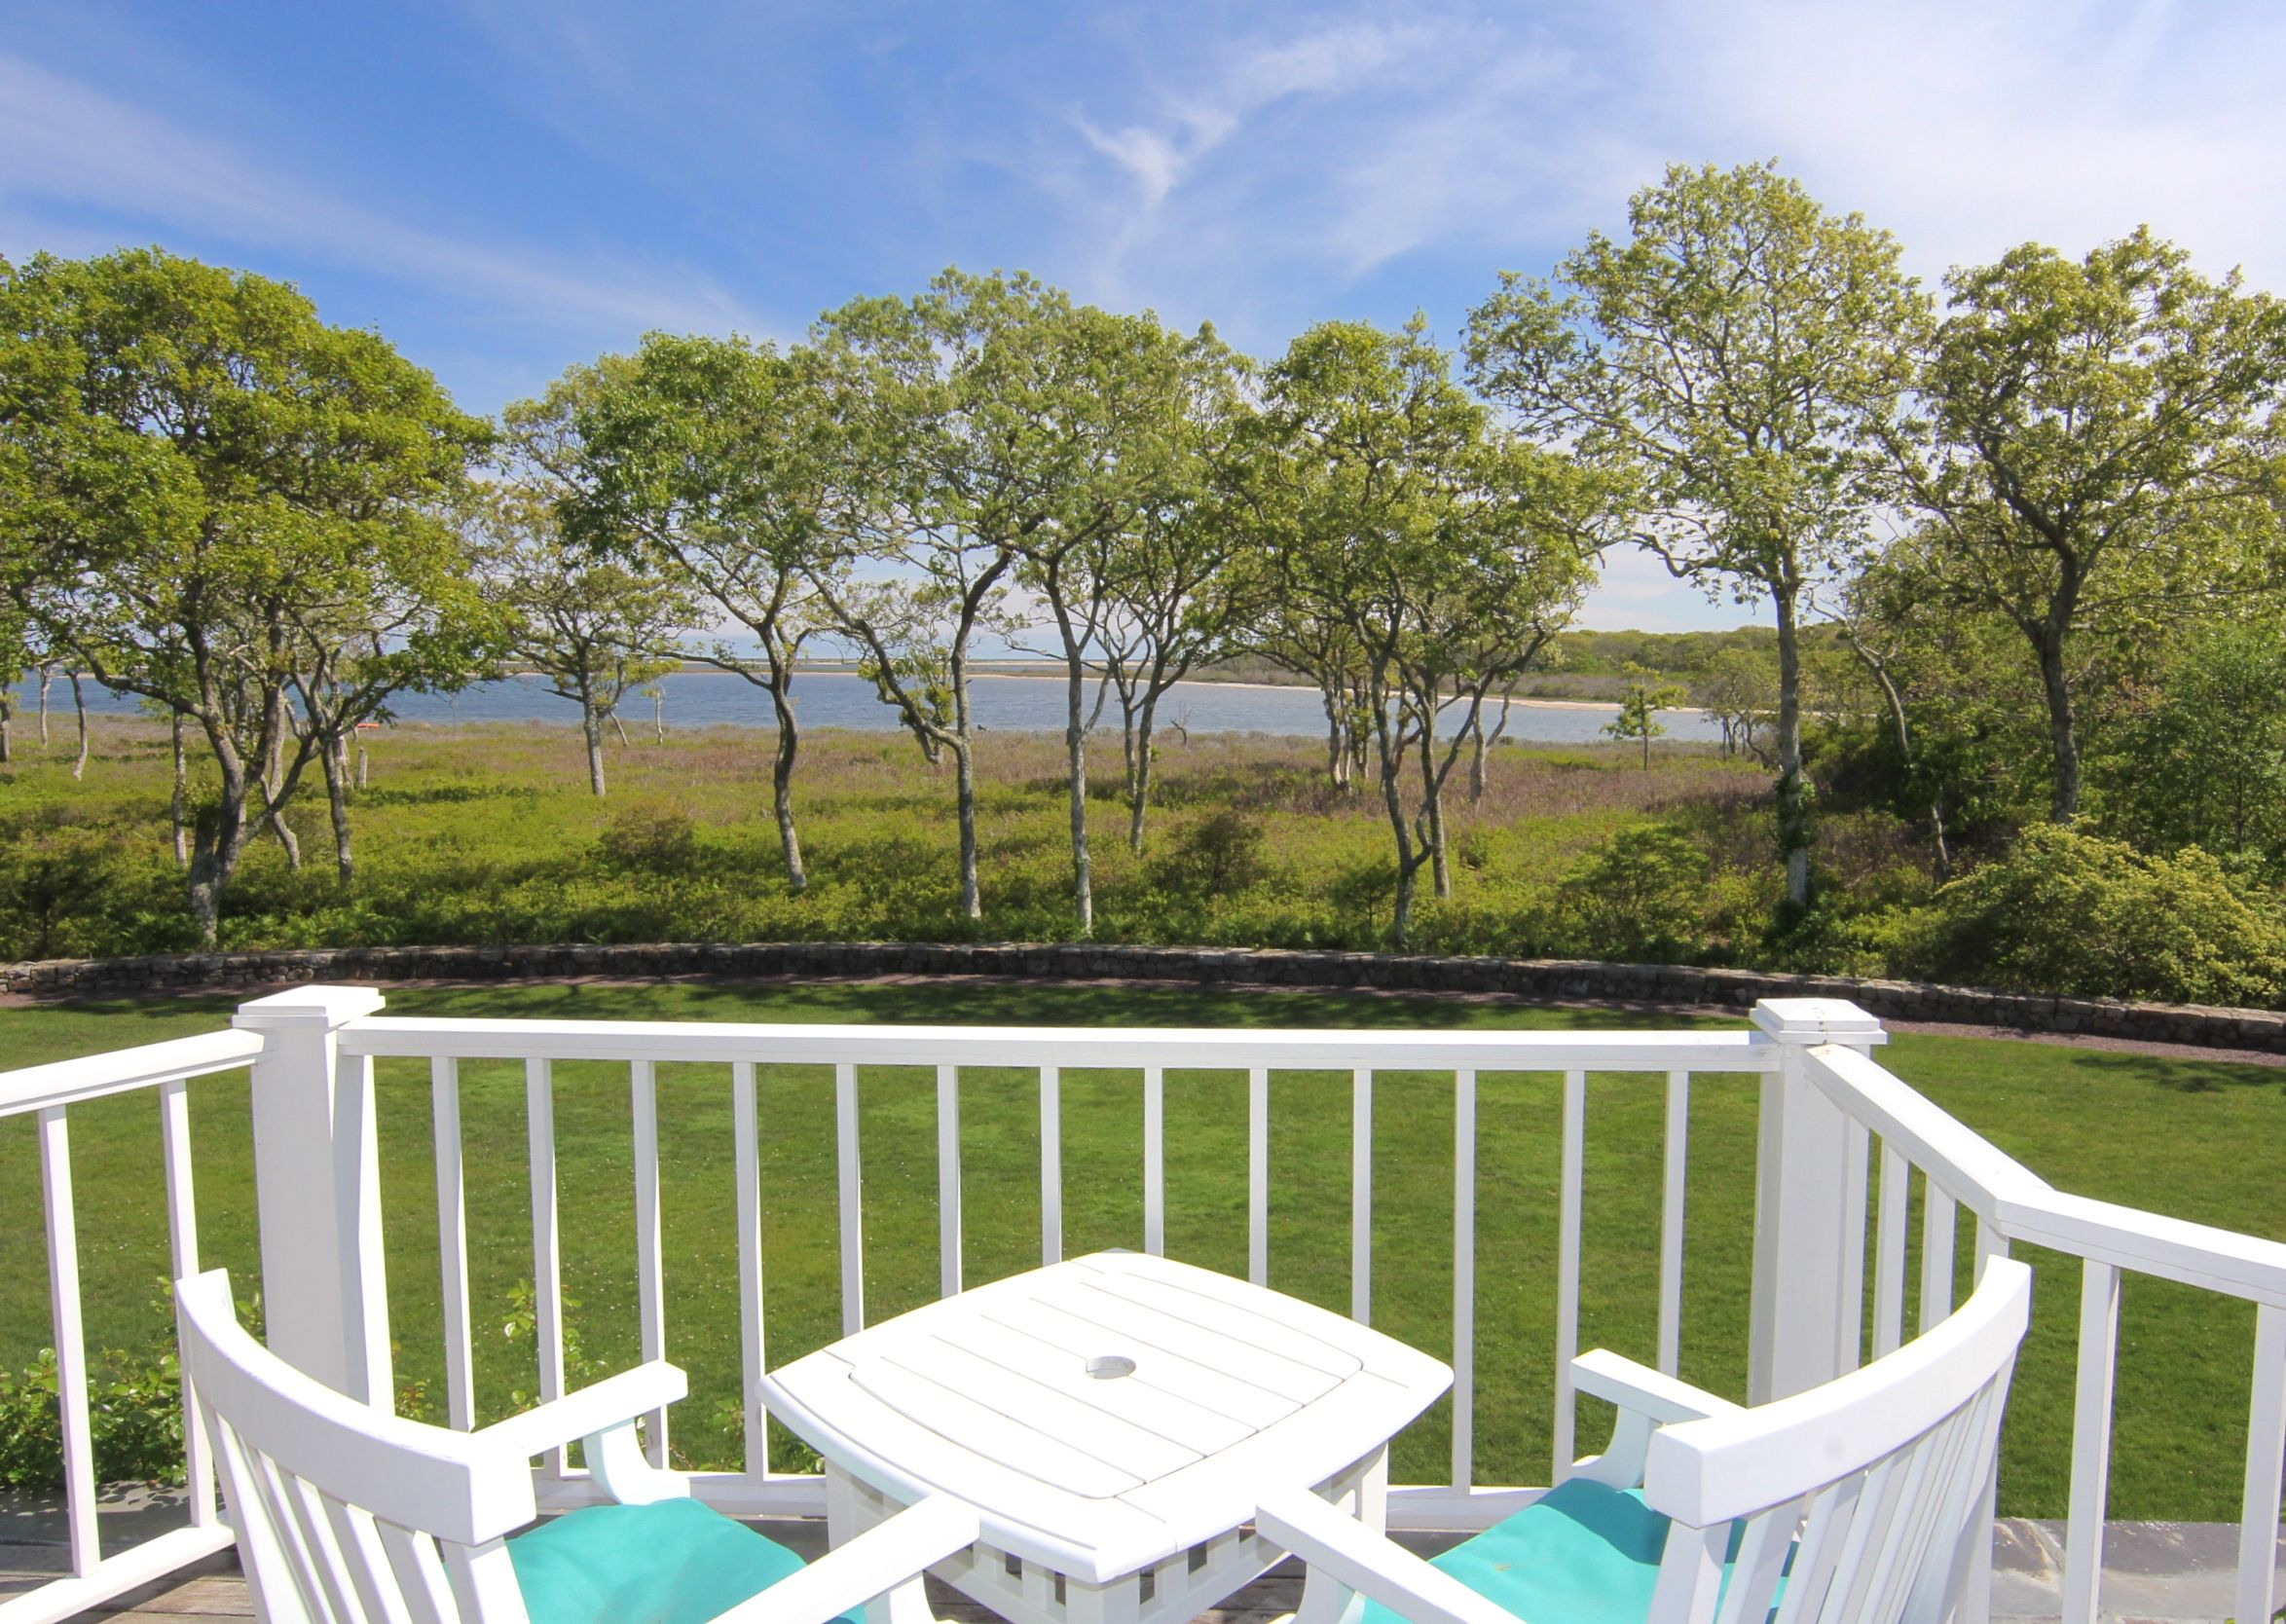 Additional photo for property listing at 32 Boldwater Road  Edgartown, Μασαχουσετη,02539 Ηνωμενεσ Πολιτειεσ